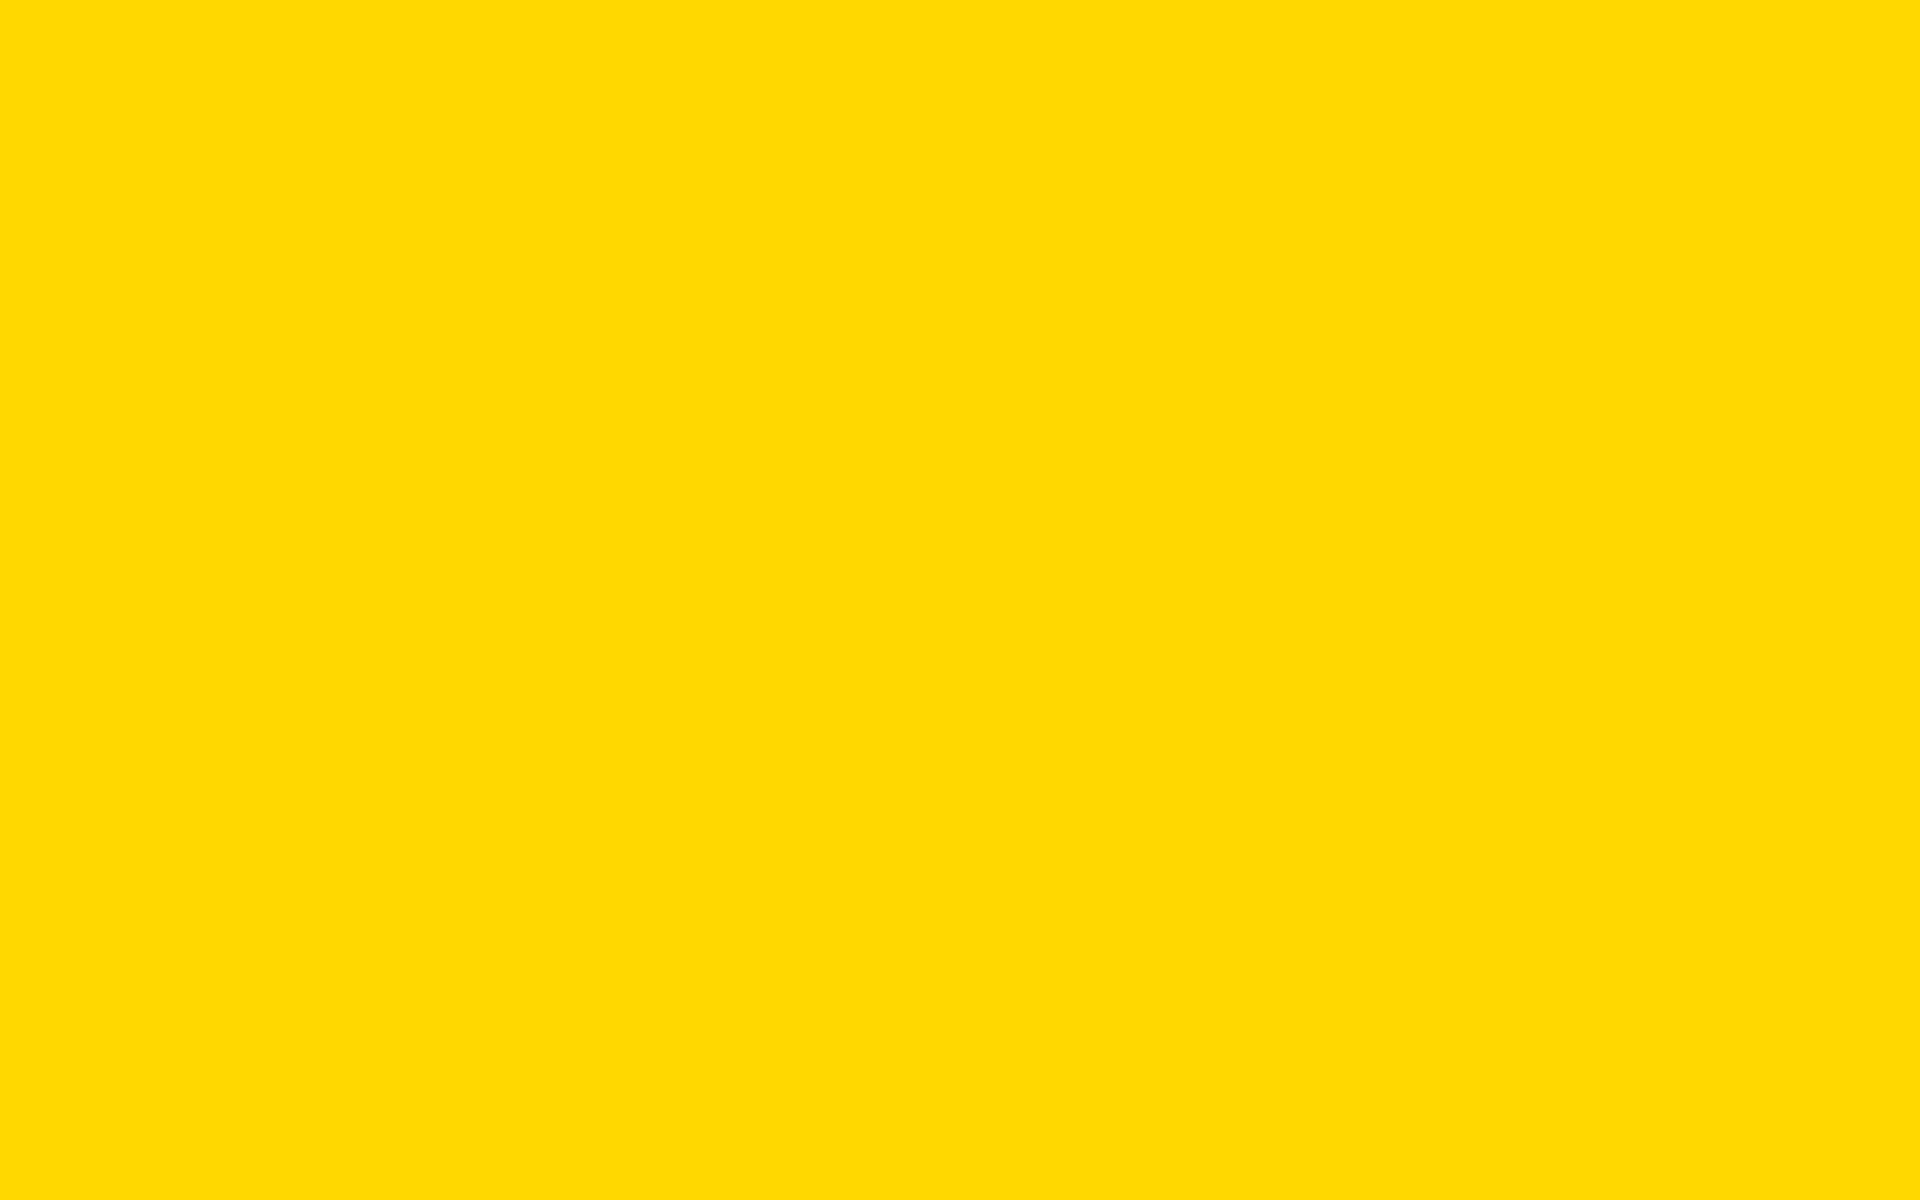 1920x1200 School Bus Yellow Solid Color Background